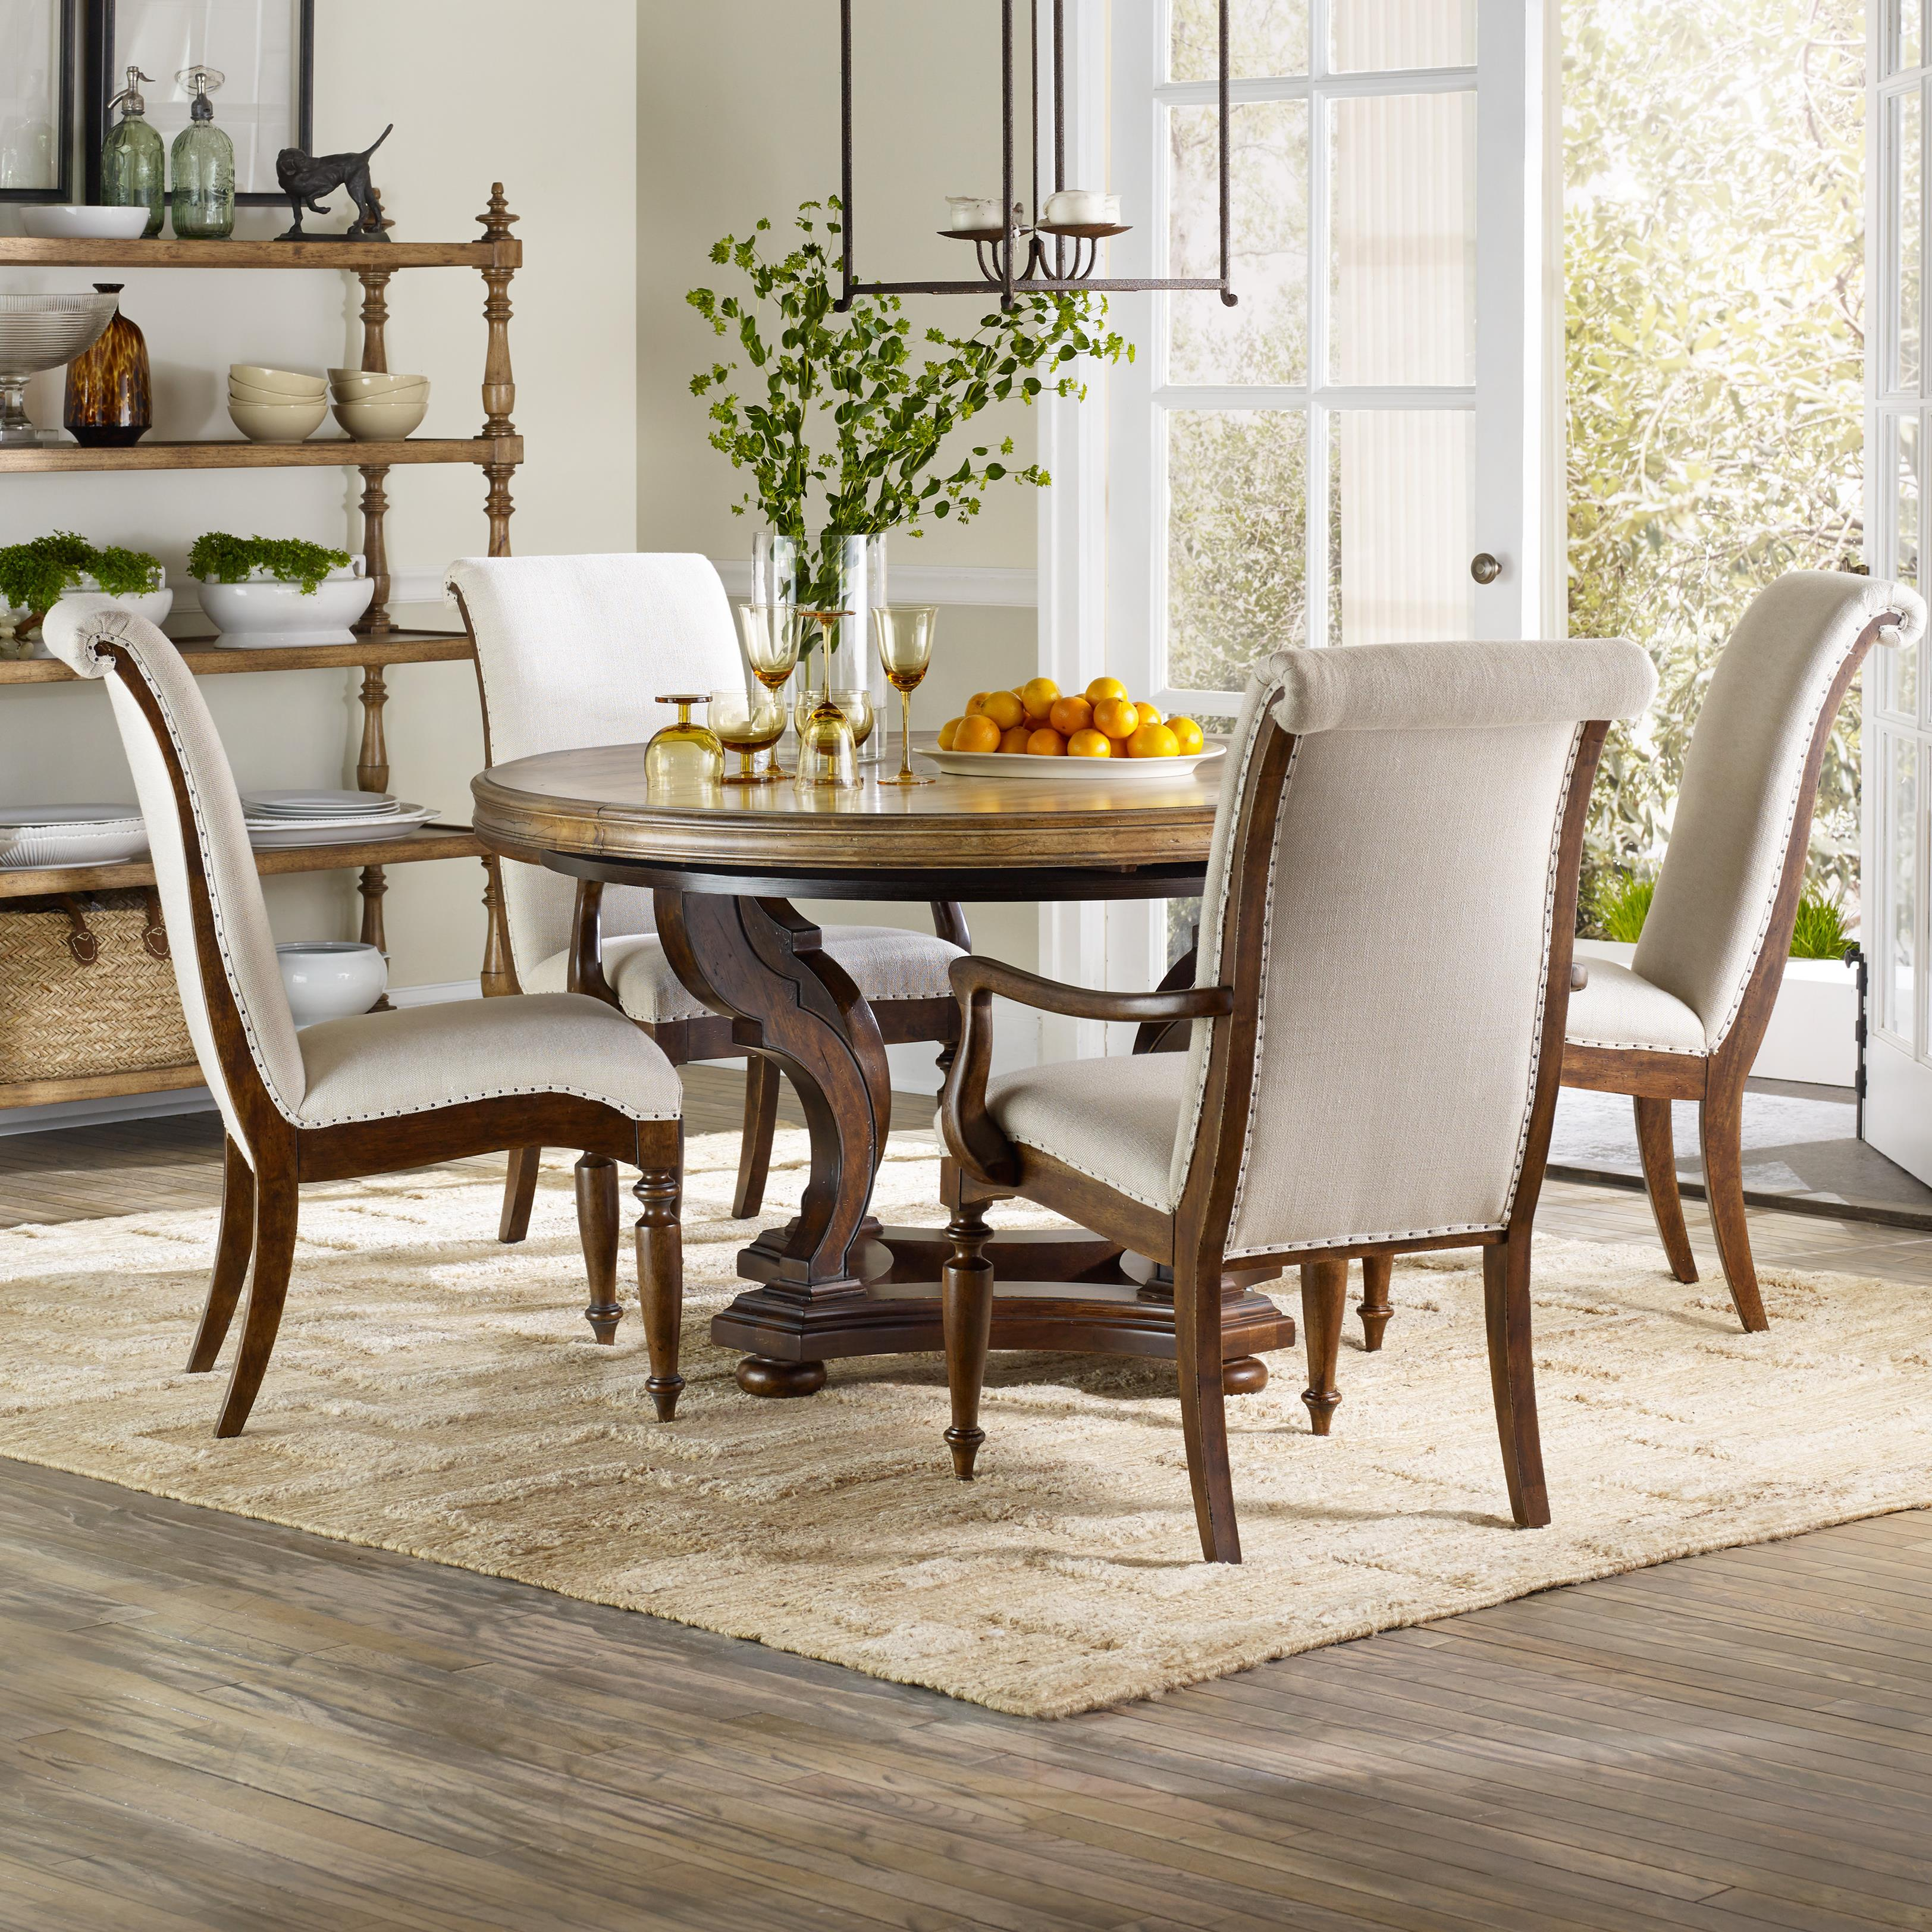 Hooker Furniture Archivist 5 Piece Dining Set - Item Number: 5447-75203-TOFFEE+2x75400+2x75410